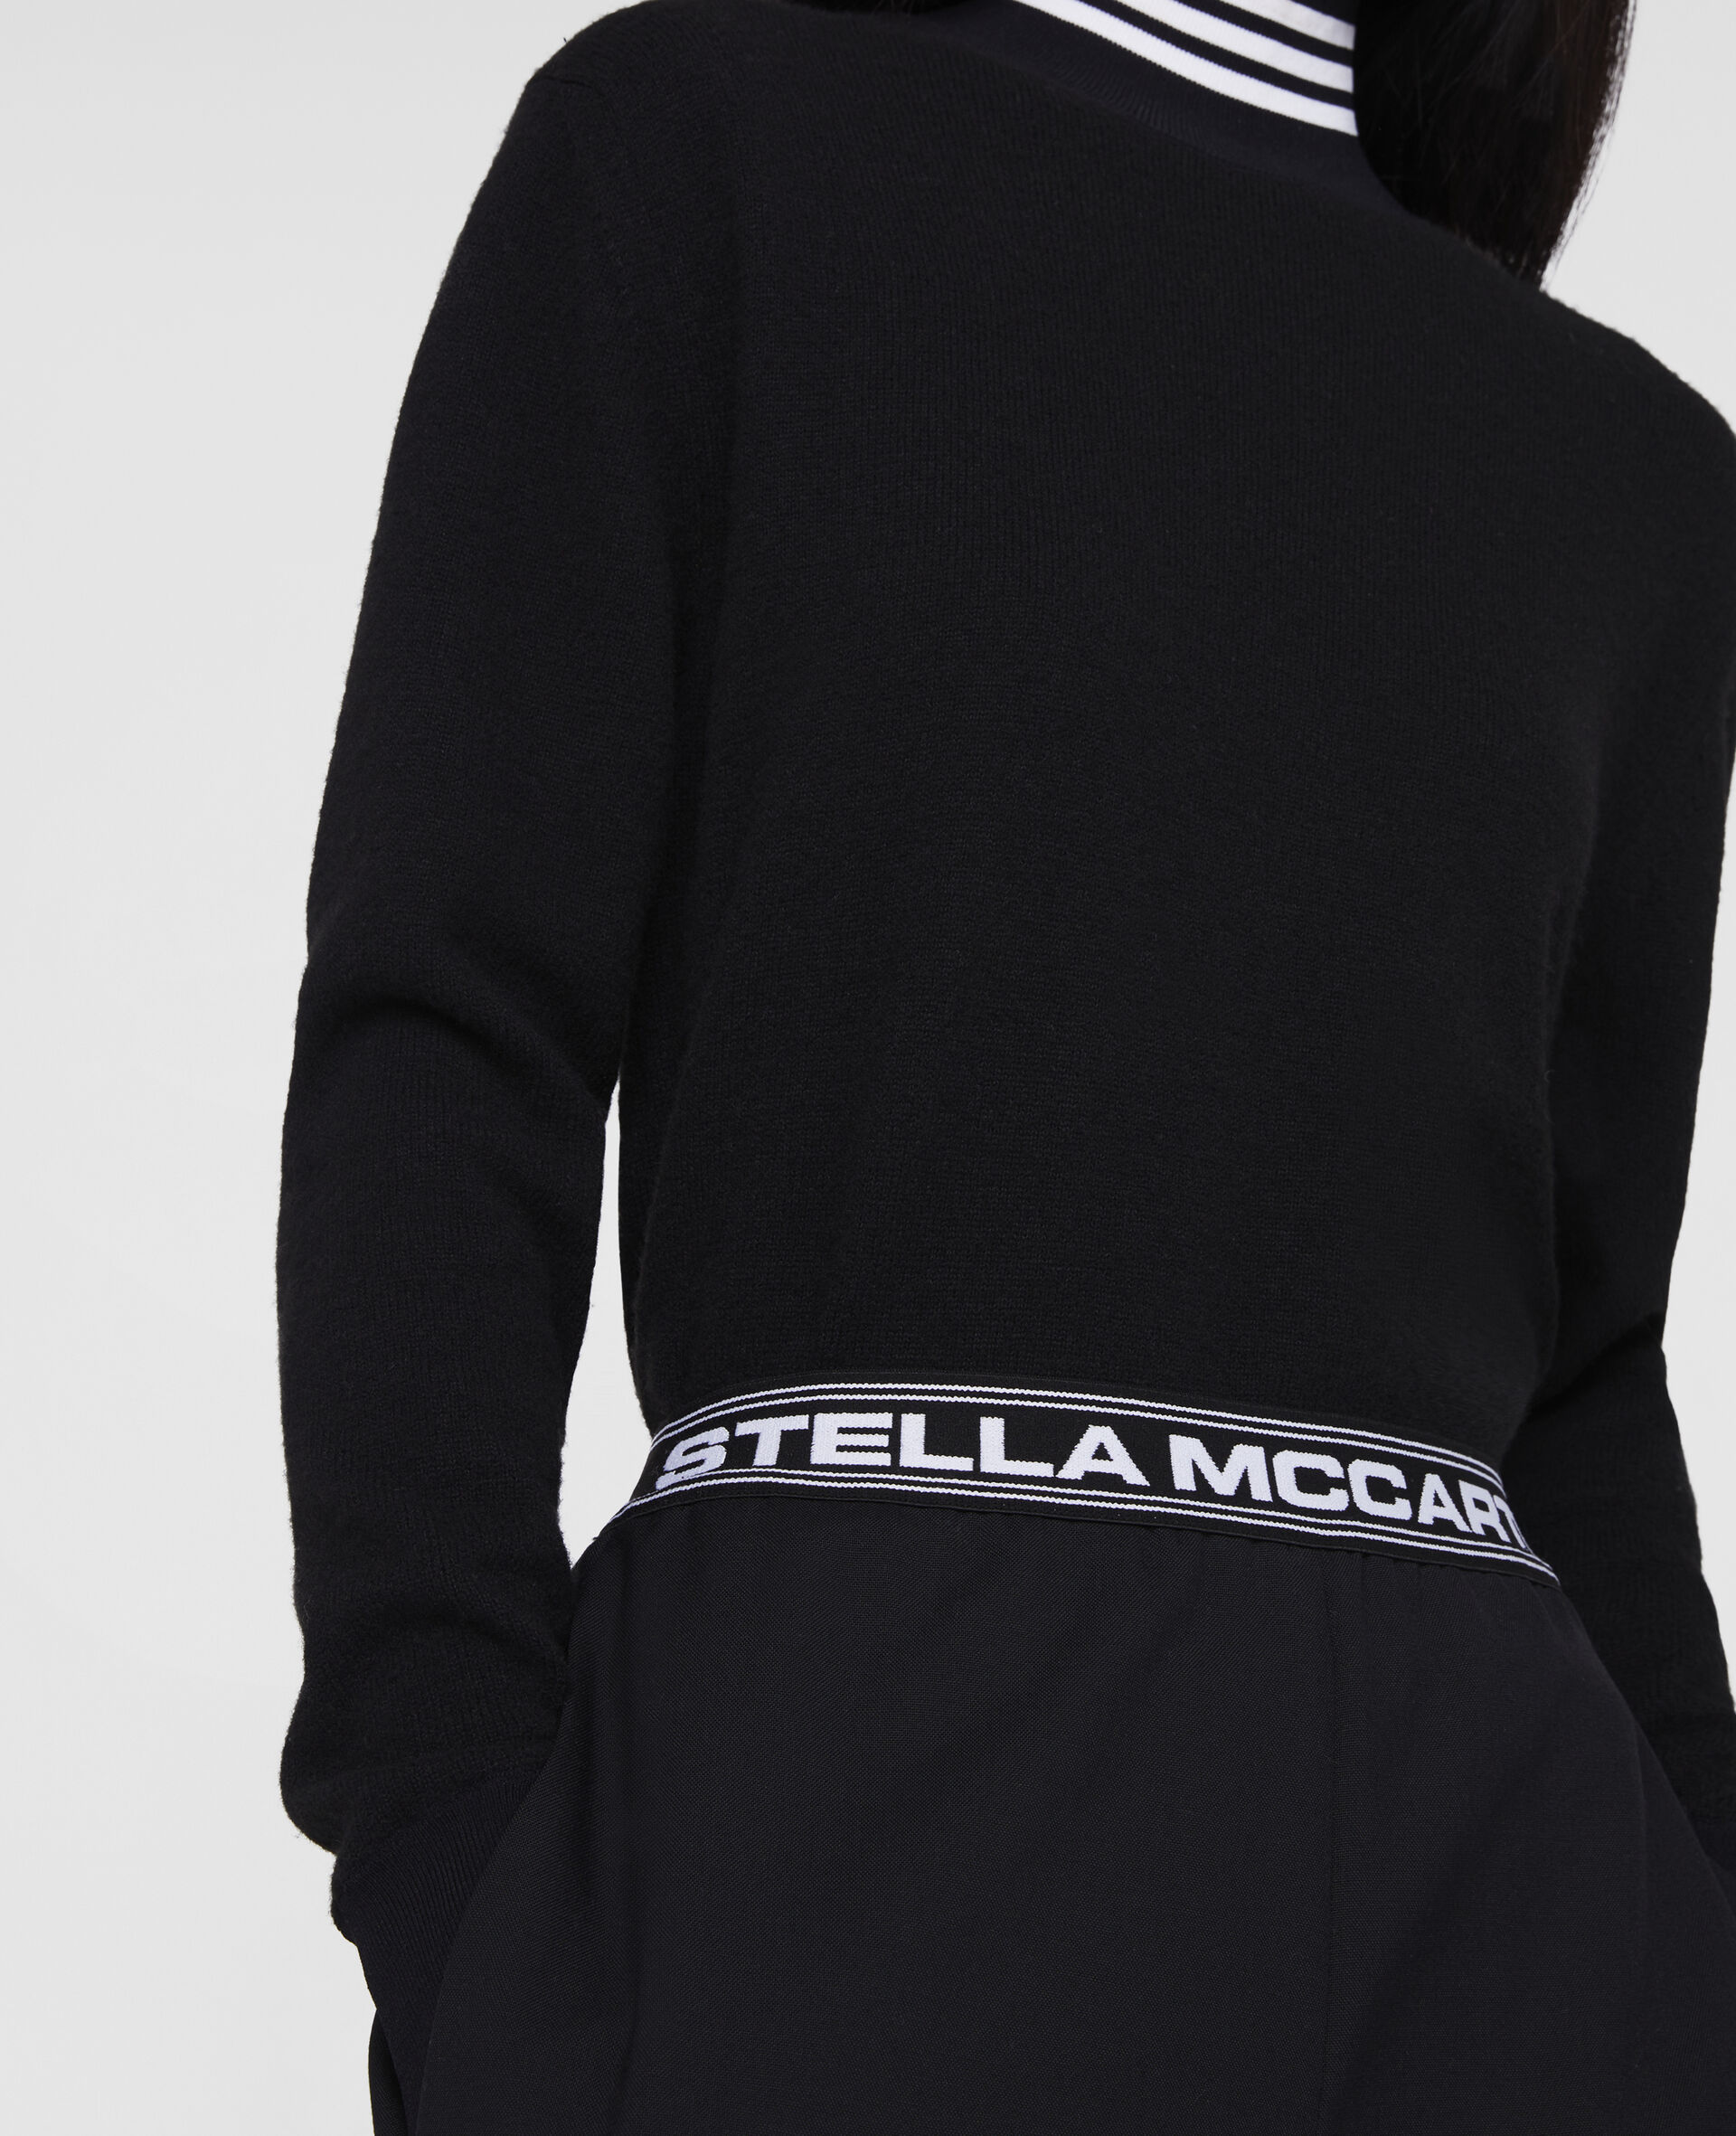 Stella Logo Tailored Trousers -Black-large image number 3